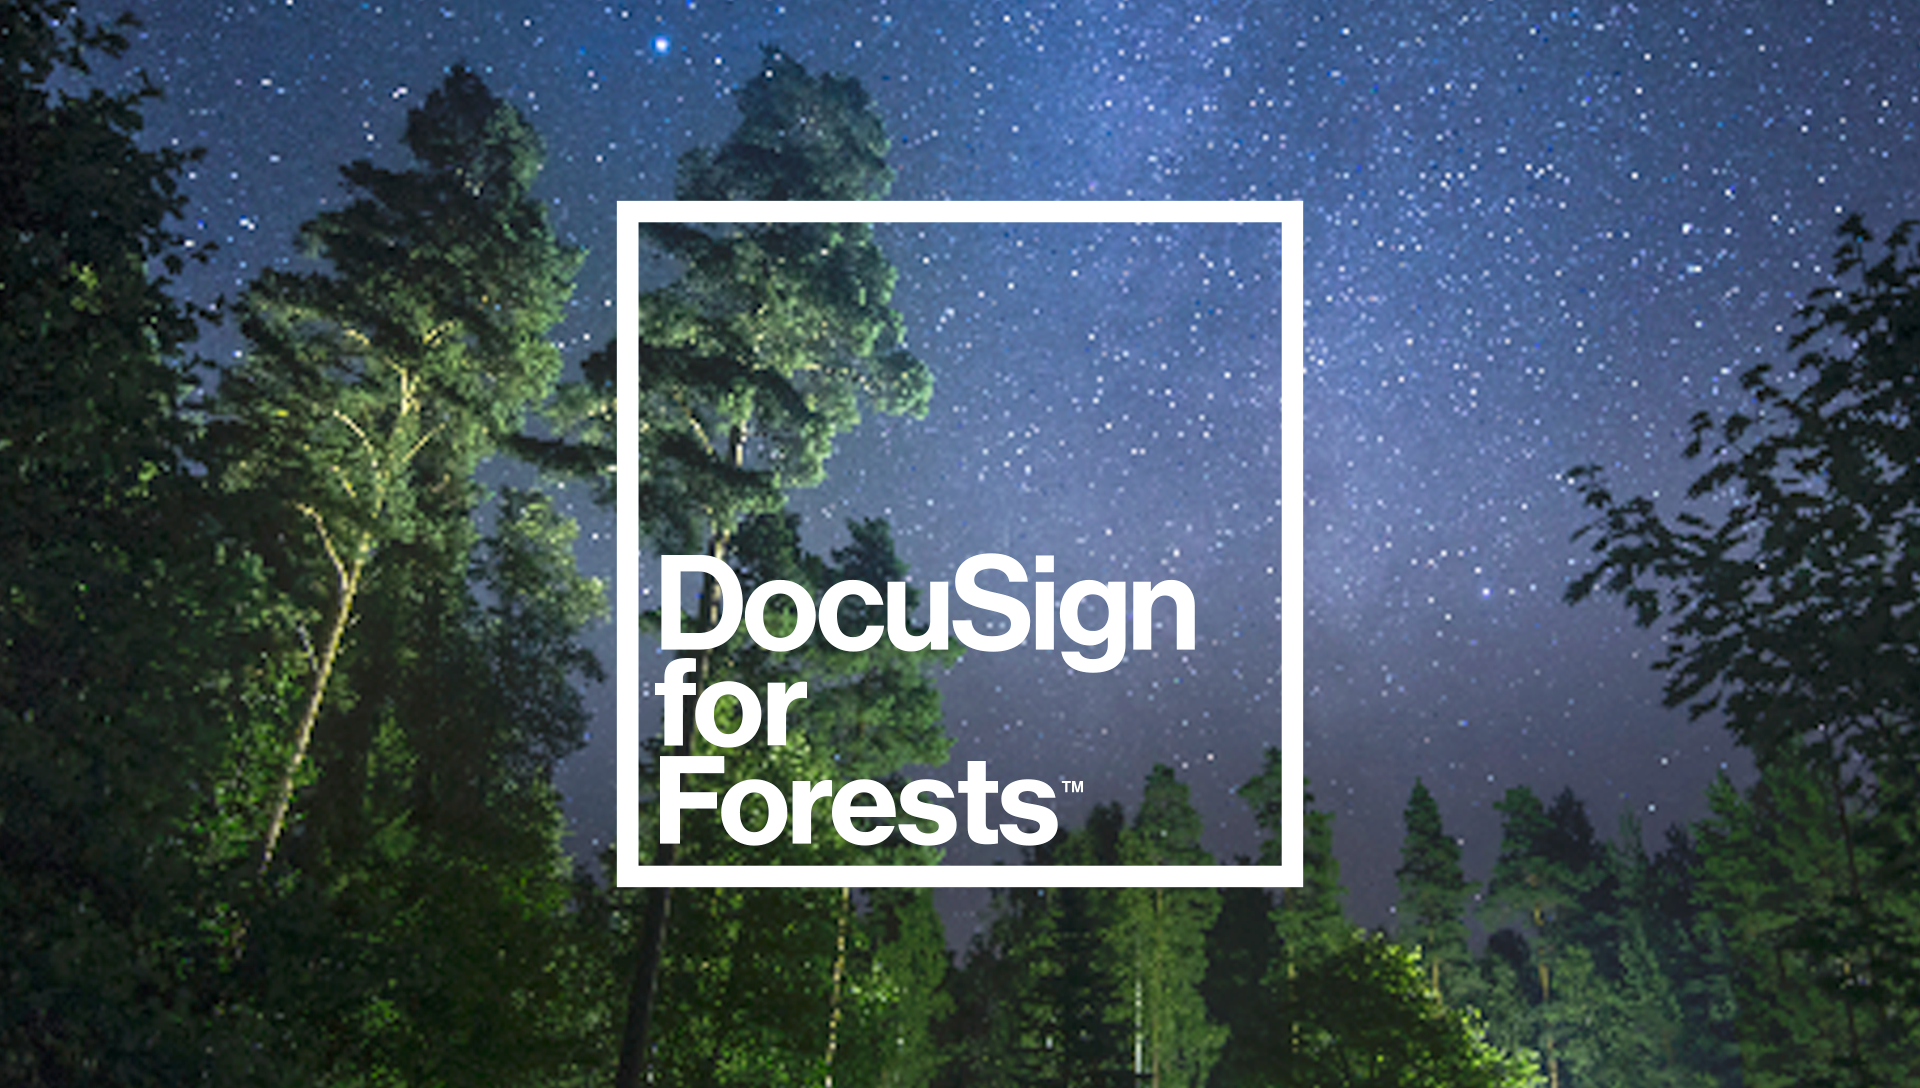 DocuSign for Forests Standbild